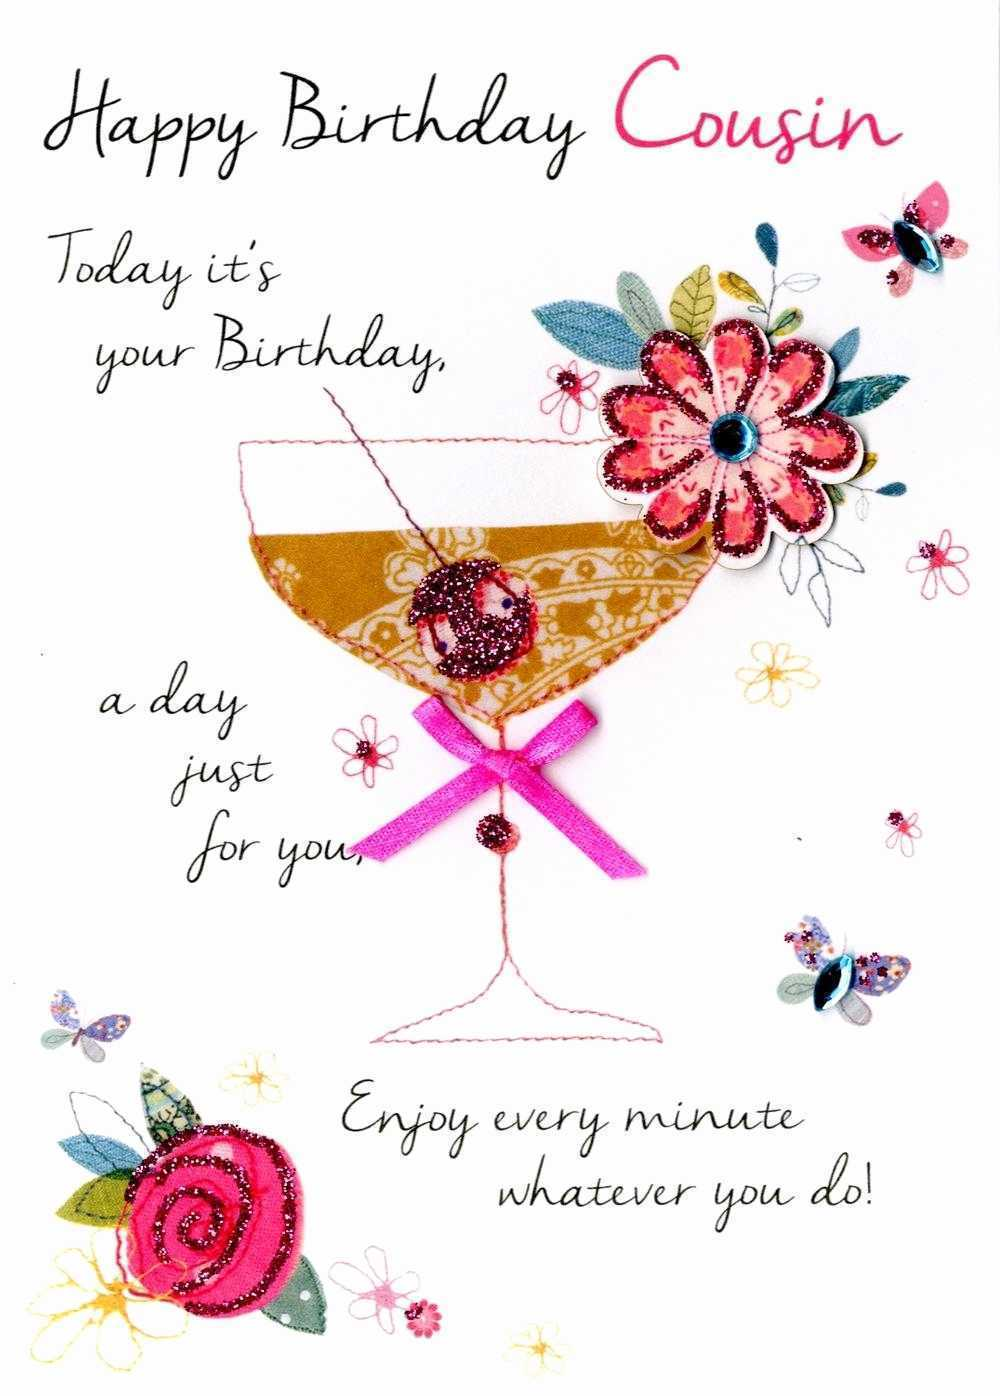 happy birthday message for cousin female ; birthday-wishes-for-cousin-female-beautiful-female-cousin-happy-birthday-greeting-card-cards-of-birthday-wishes-for-cousin-female